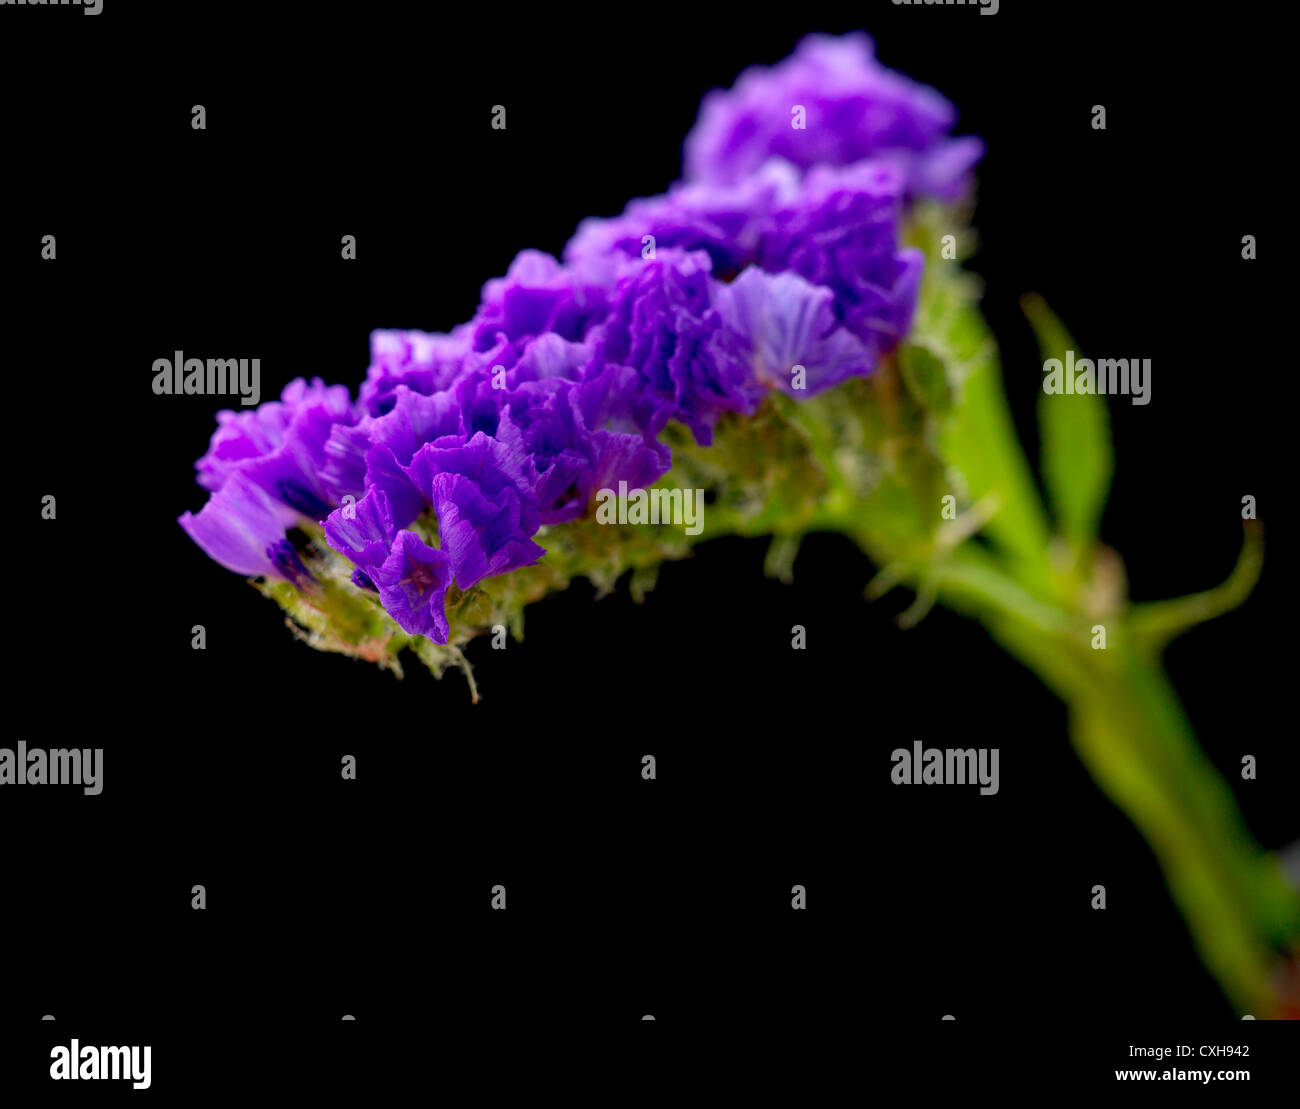 Limonium. Common name. Statice, Sea lavender - Stock Image